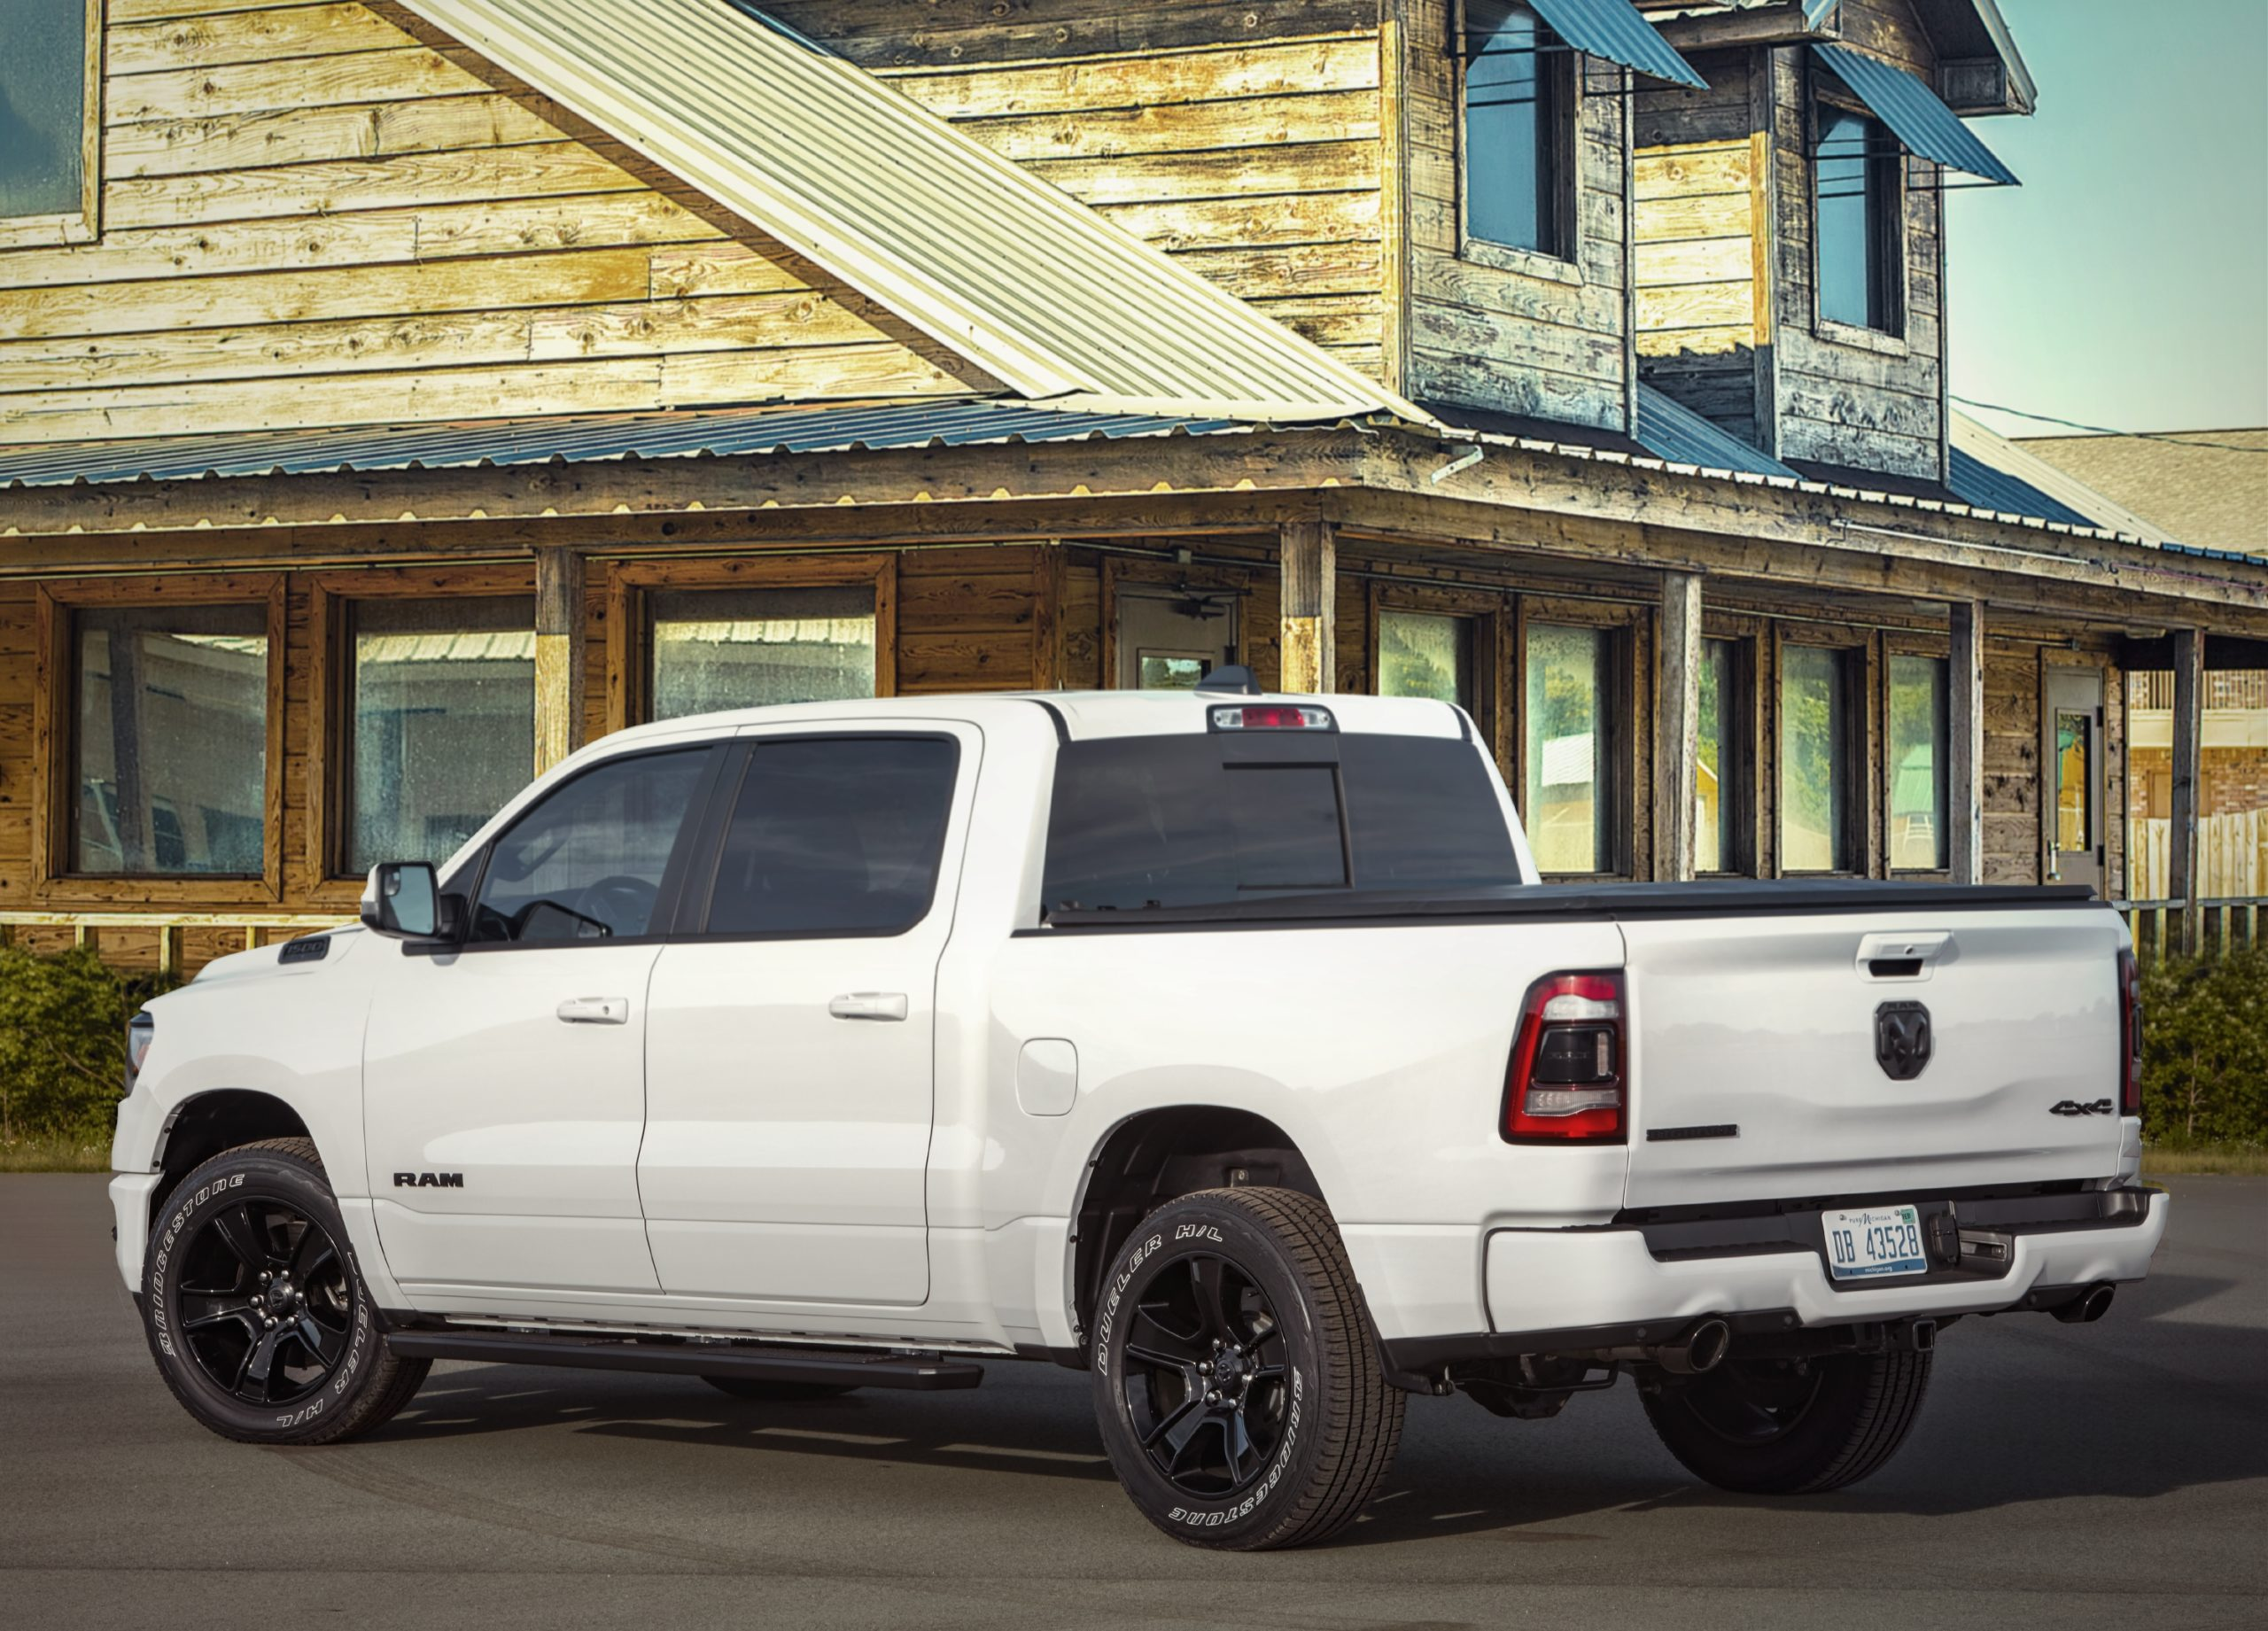 Ram Adds New Packages Options And Colors For 2020 Half Ton